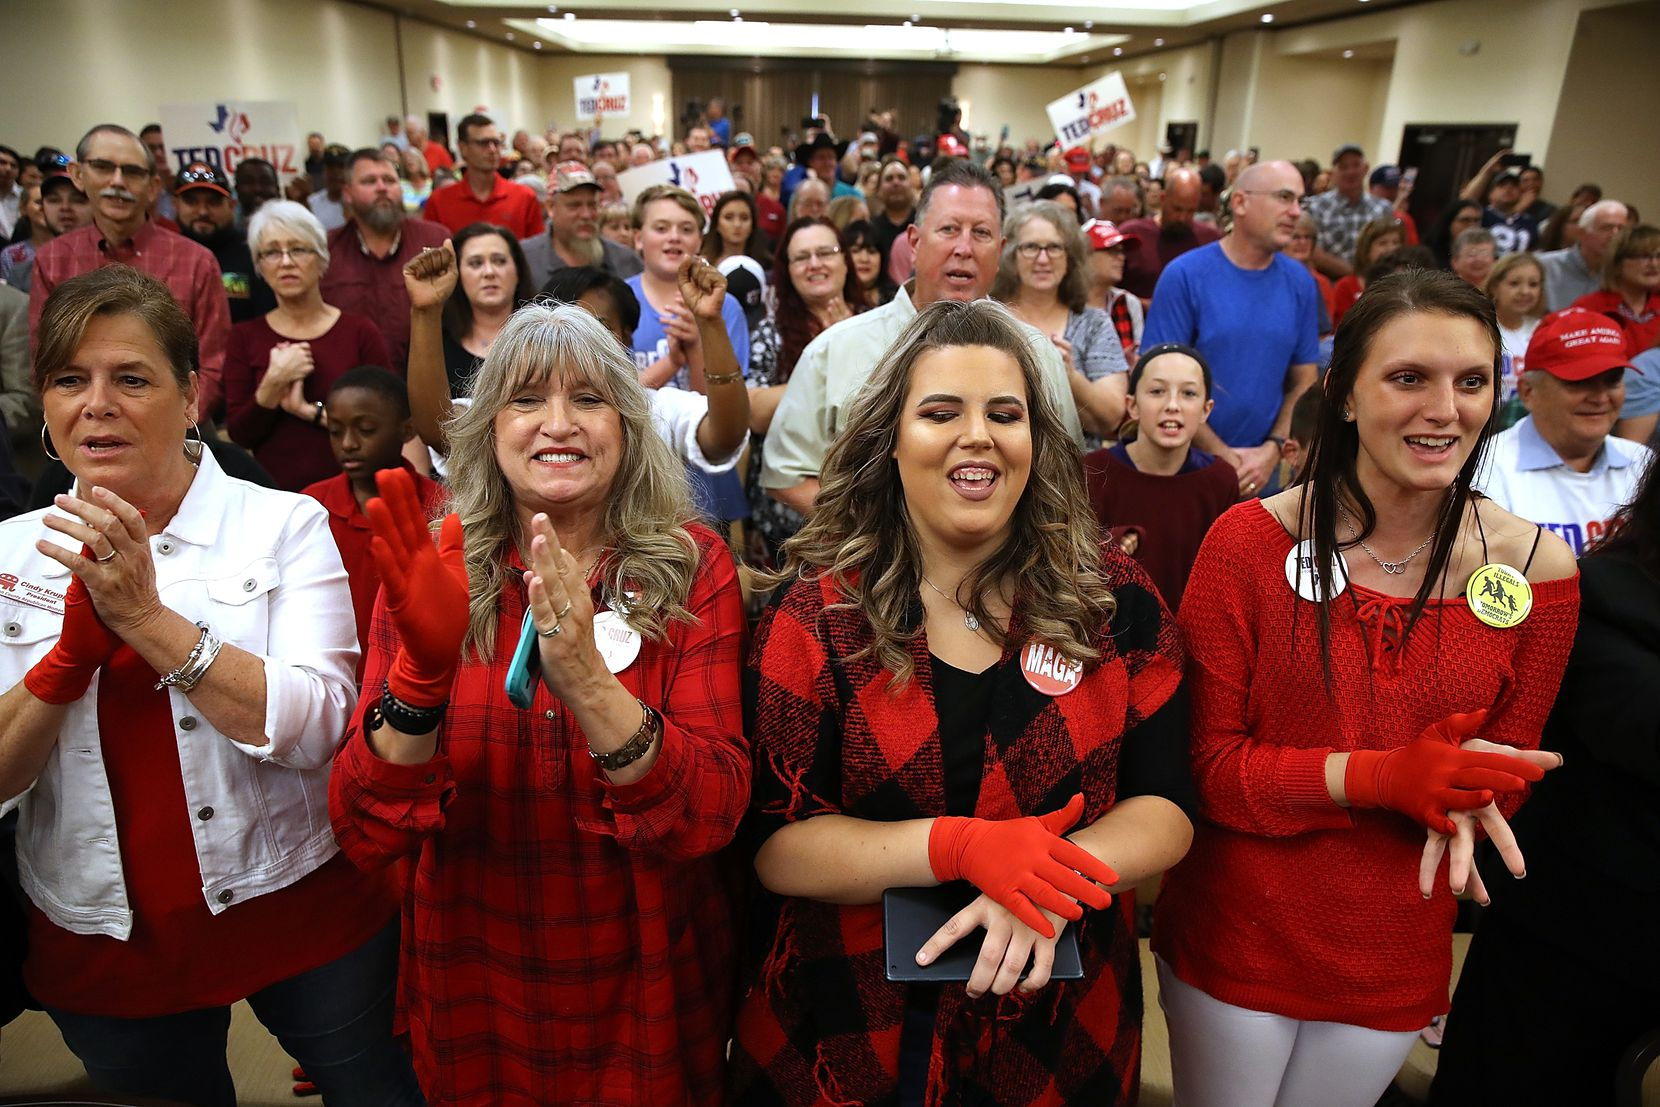 Supporters cheer during Ted Cruz's speech in Victoria on Saturday.